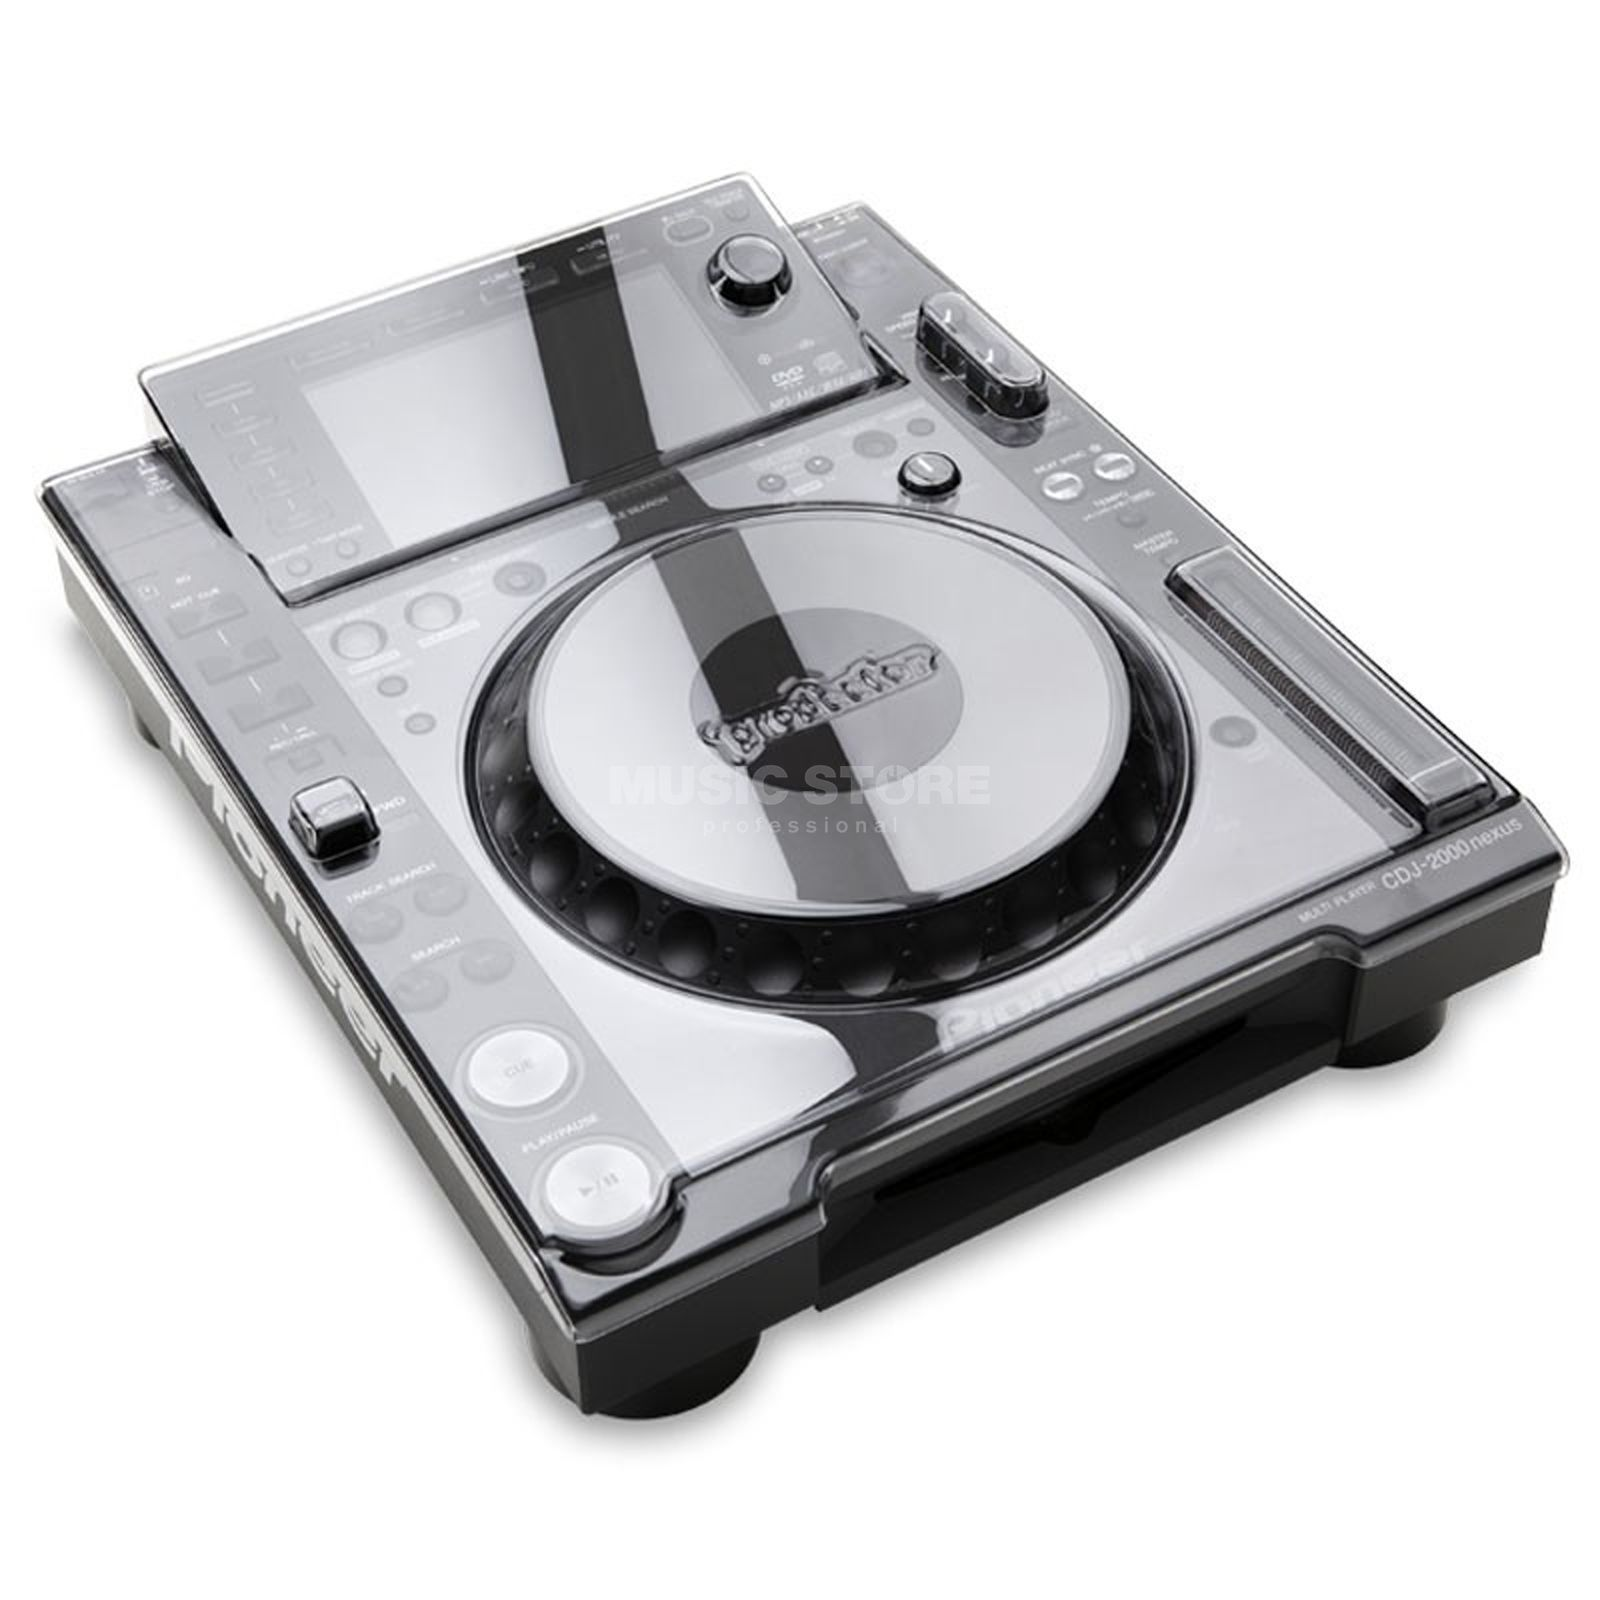 Prodector Predective Cover CDJ 2000 Nexus  Product Image